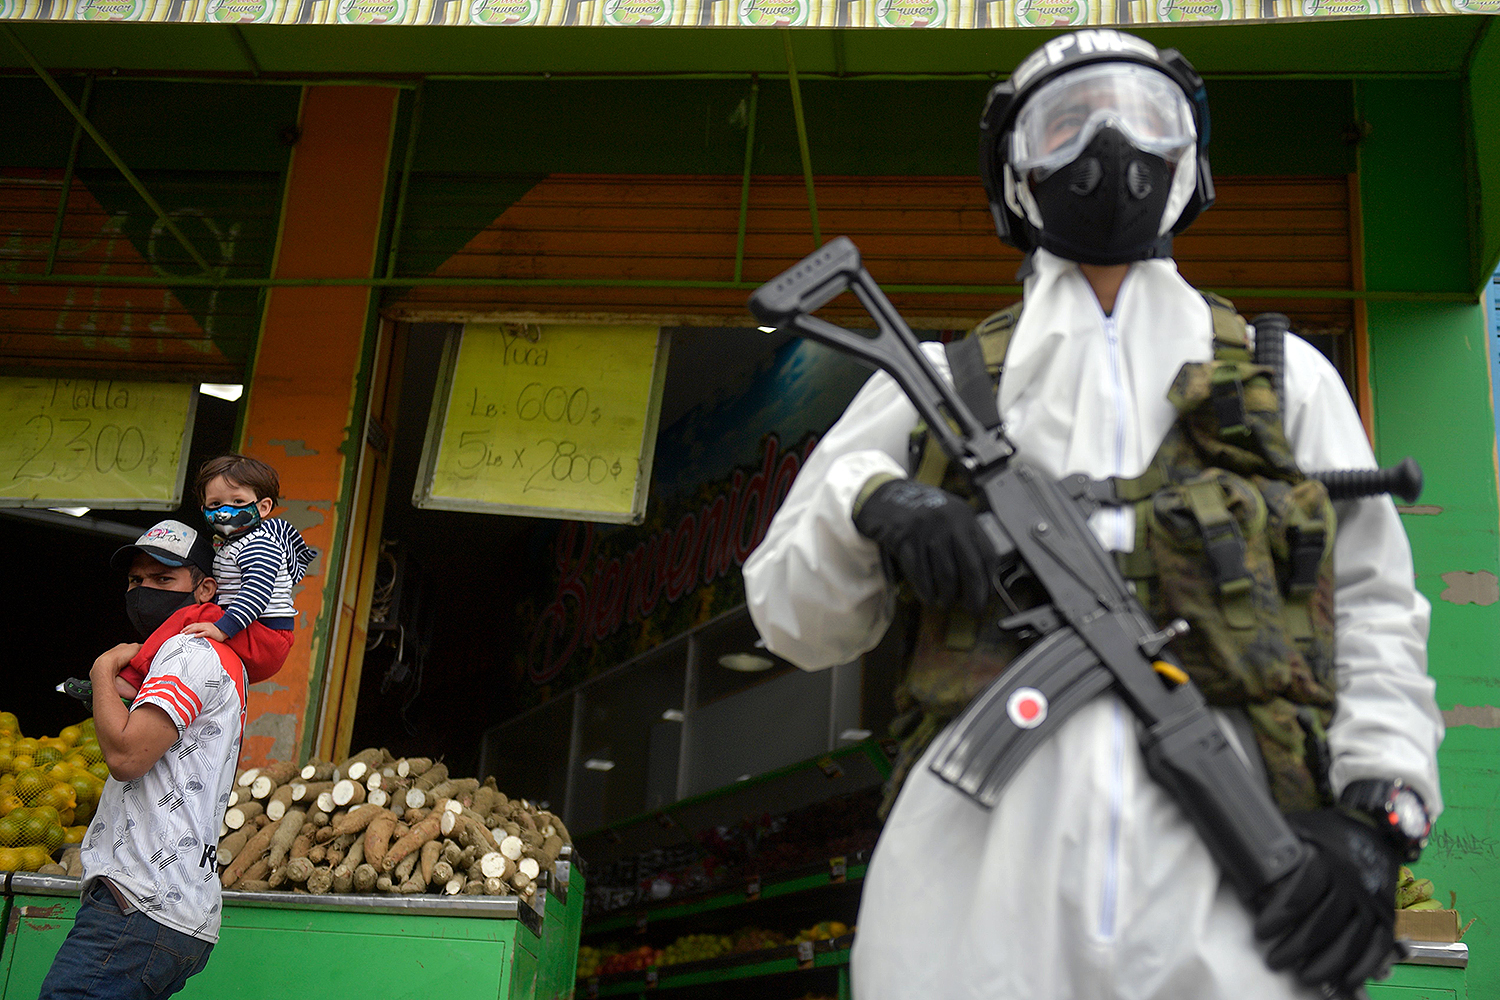 Colombian soldiers patrol the streets in Bogota on July 13 after a strict quarantine was declared to stop the spread of the coronavirus. RAUL ARBOLEDA/AFP via Getty Images